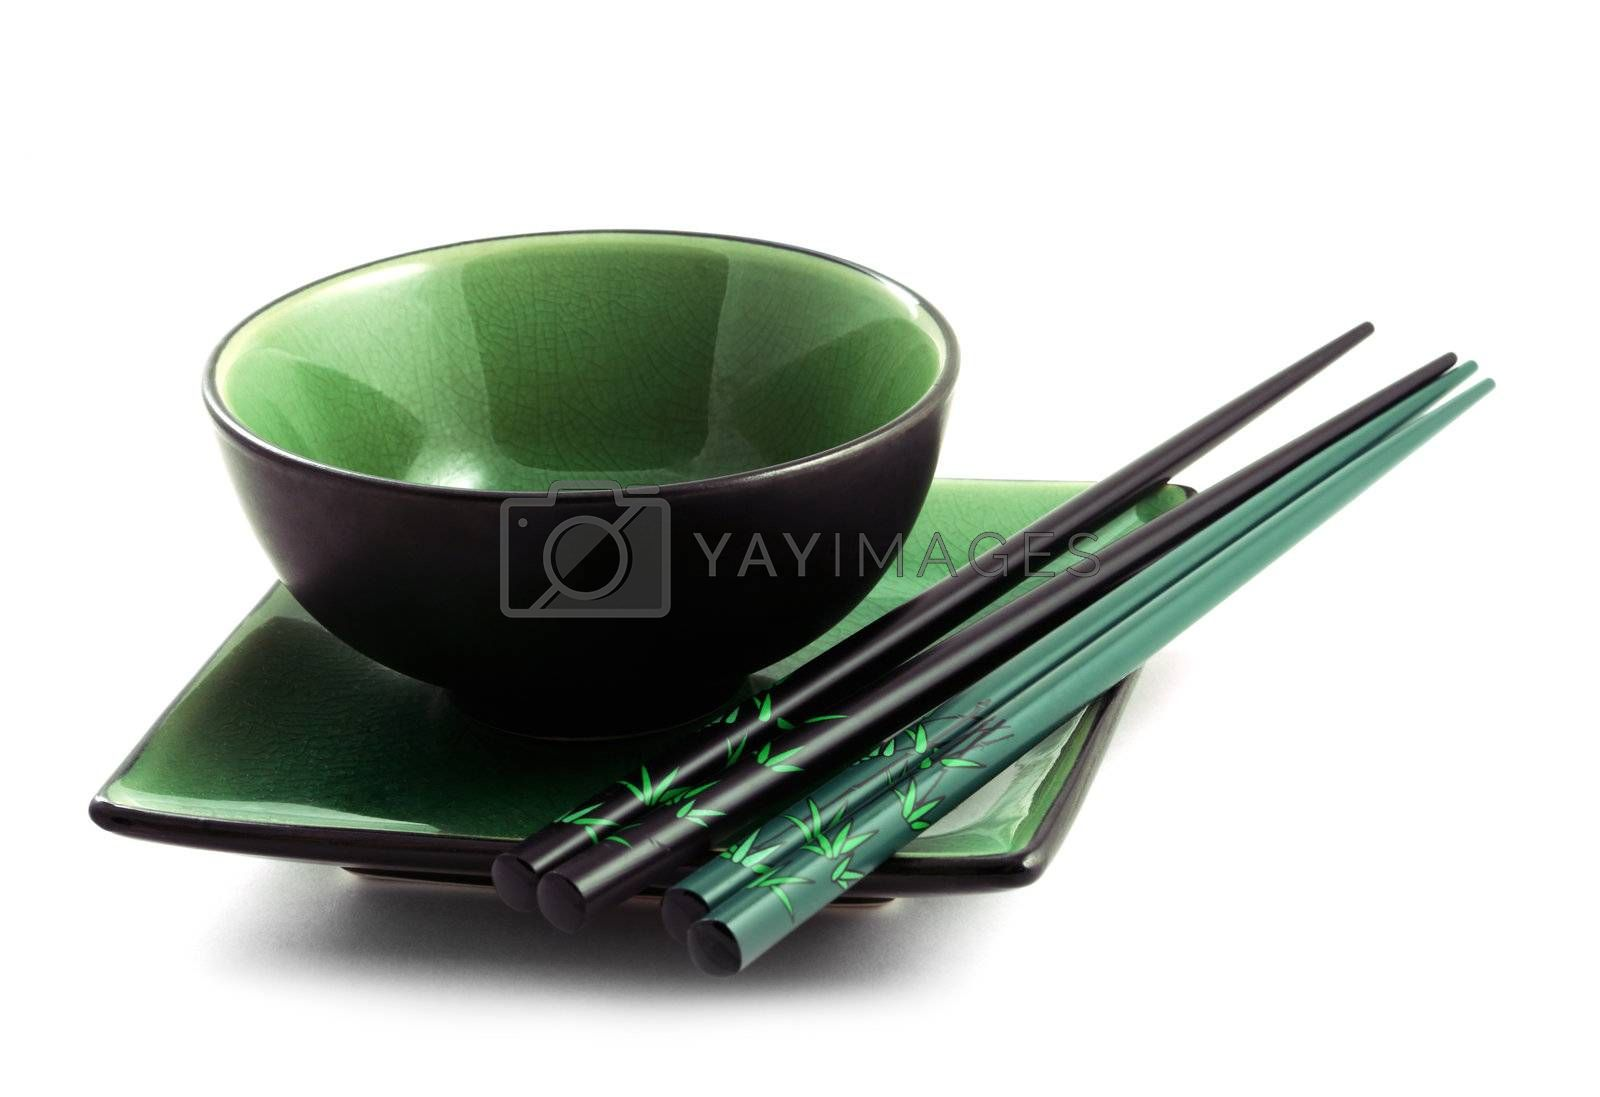 The Japanese utensils for a sushi on a white background